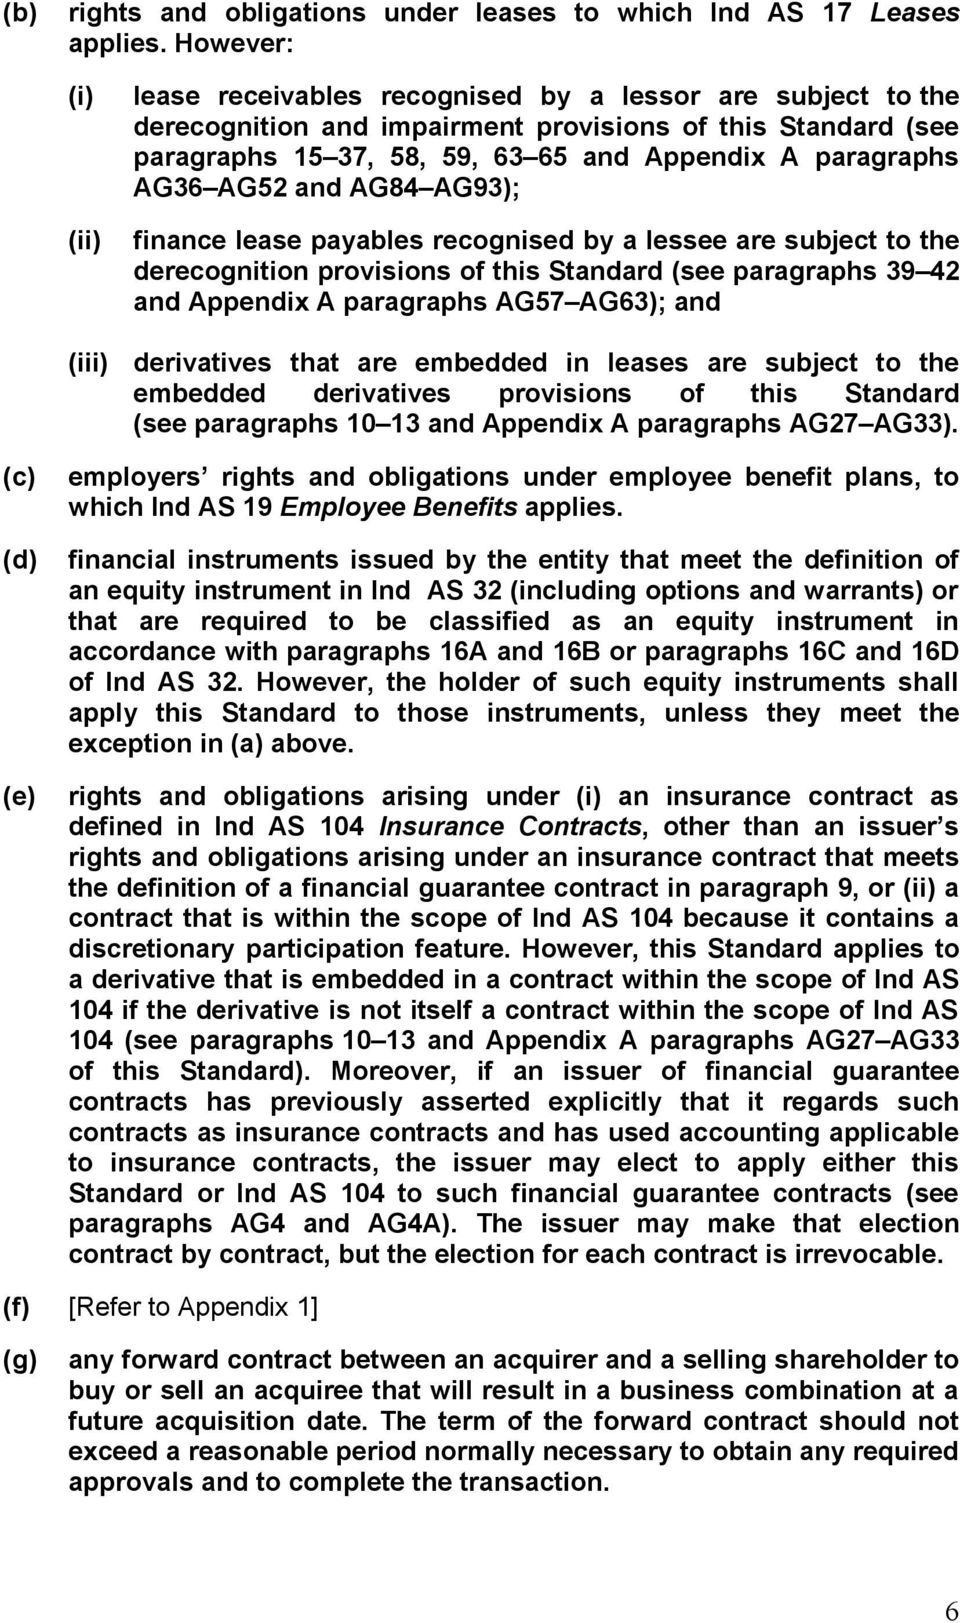 paragraphs AG36 AG52 and AG84 AG93); finance lease payables recognised by a lessee are subject to the derecognition provisions of this Standard (see paragraphs 39 42 and Appendix A paragraphs AG57